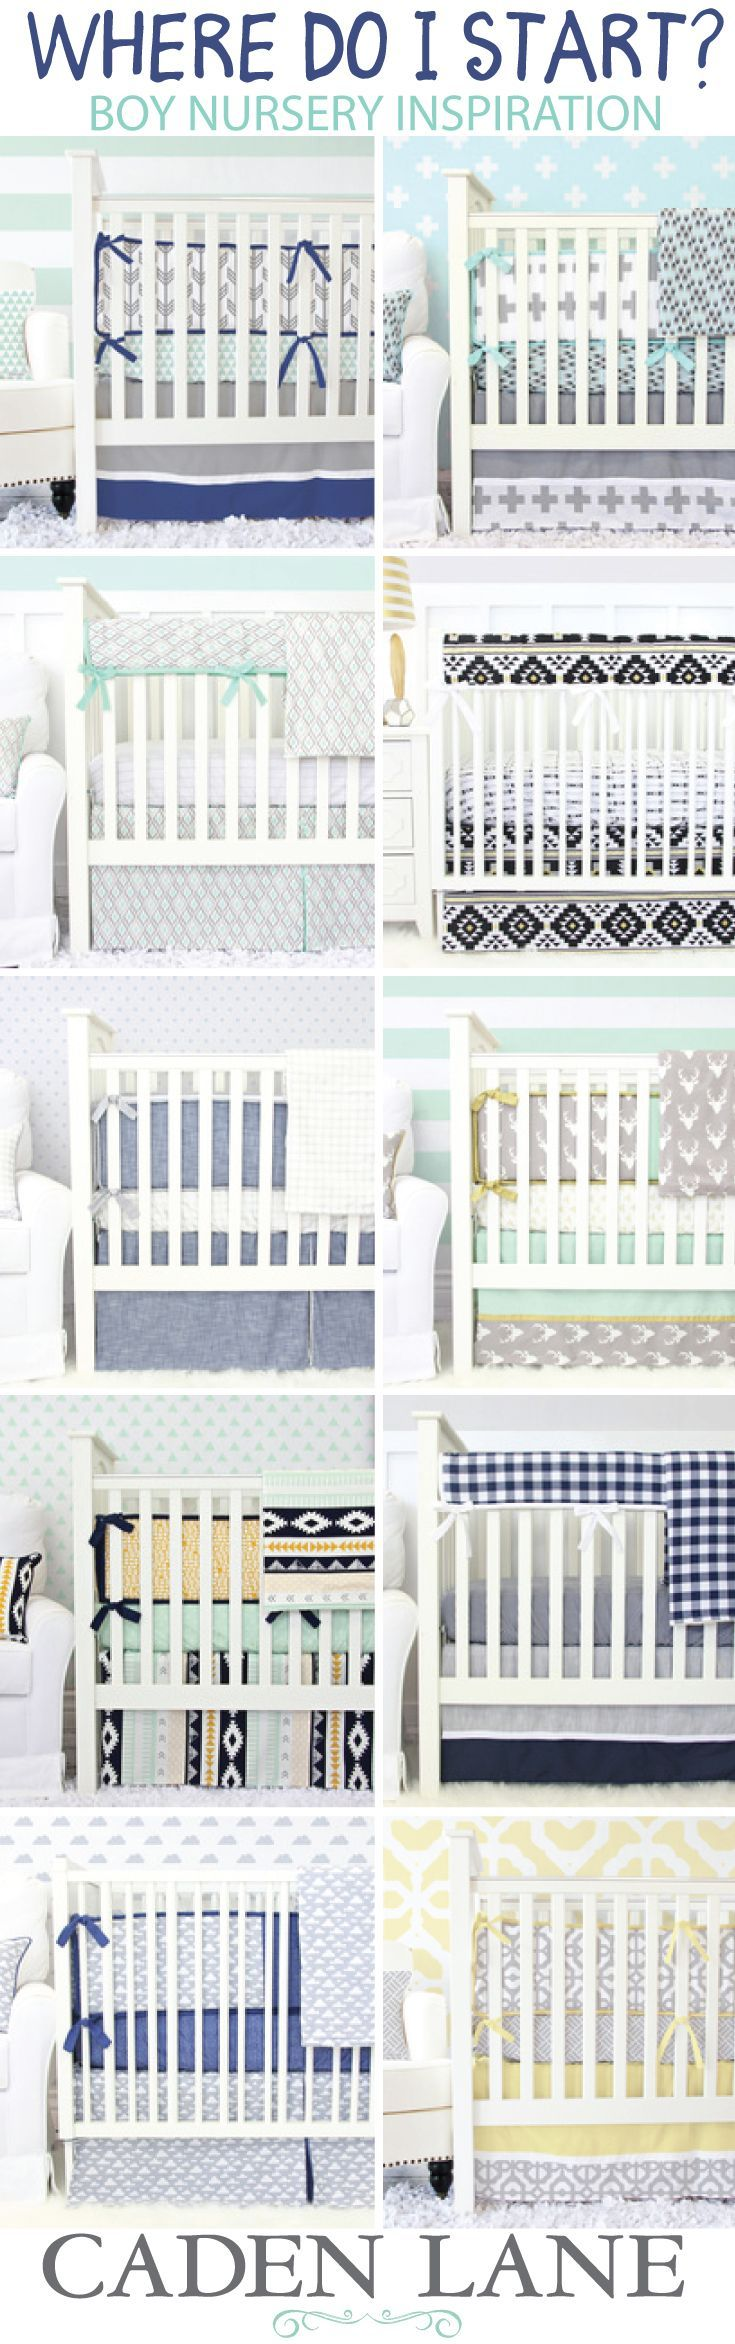 147 best for the home: baby boy nursery images on Pinterest | Nursery  ideas, Babies nursery and Nursery room